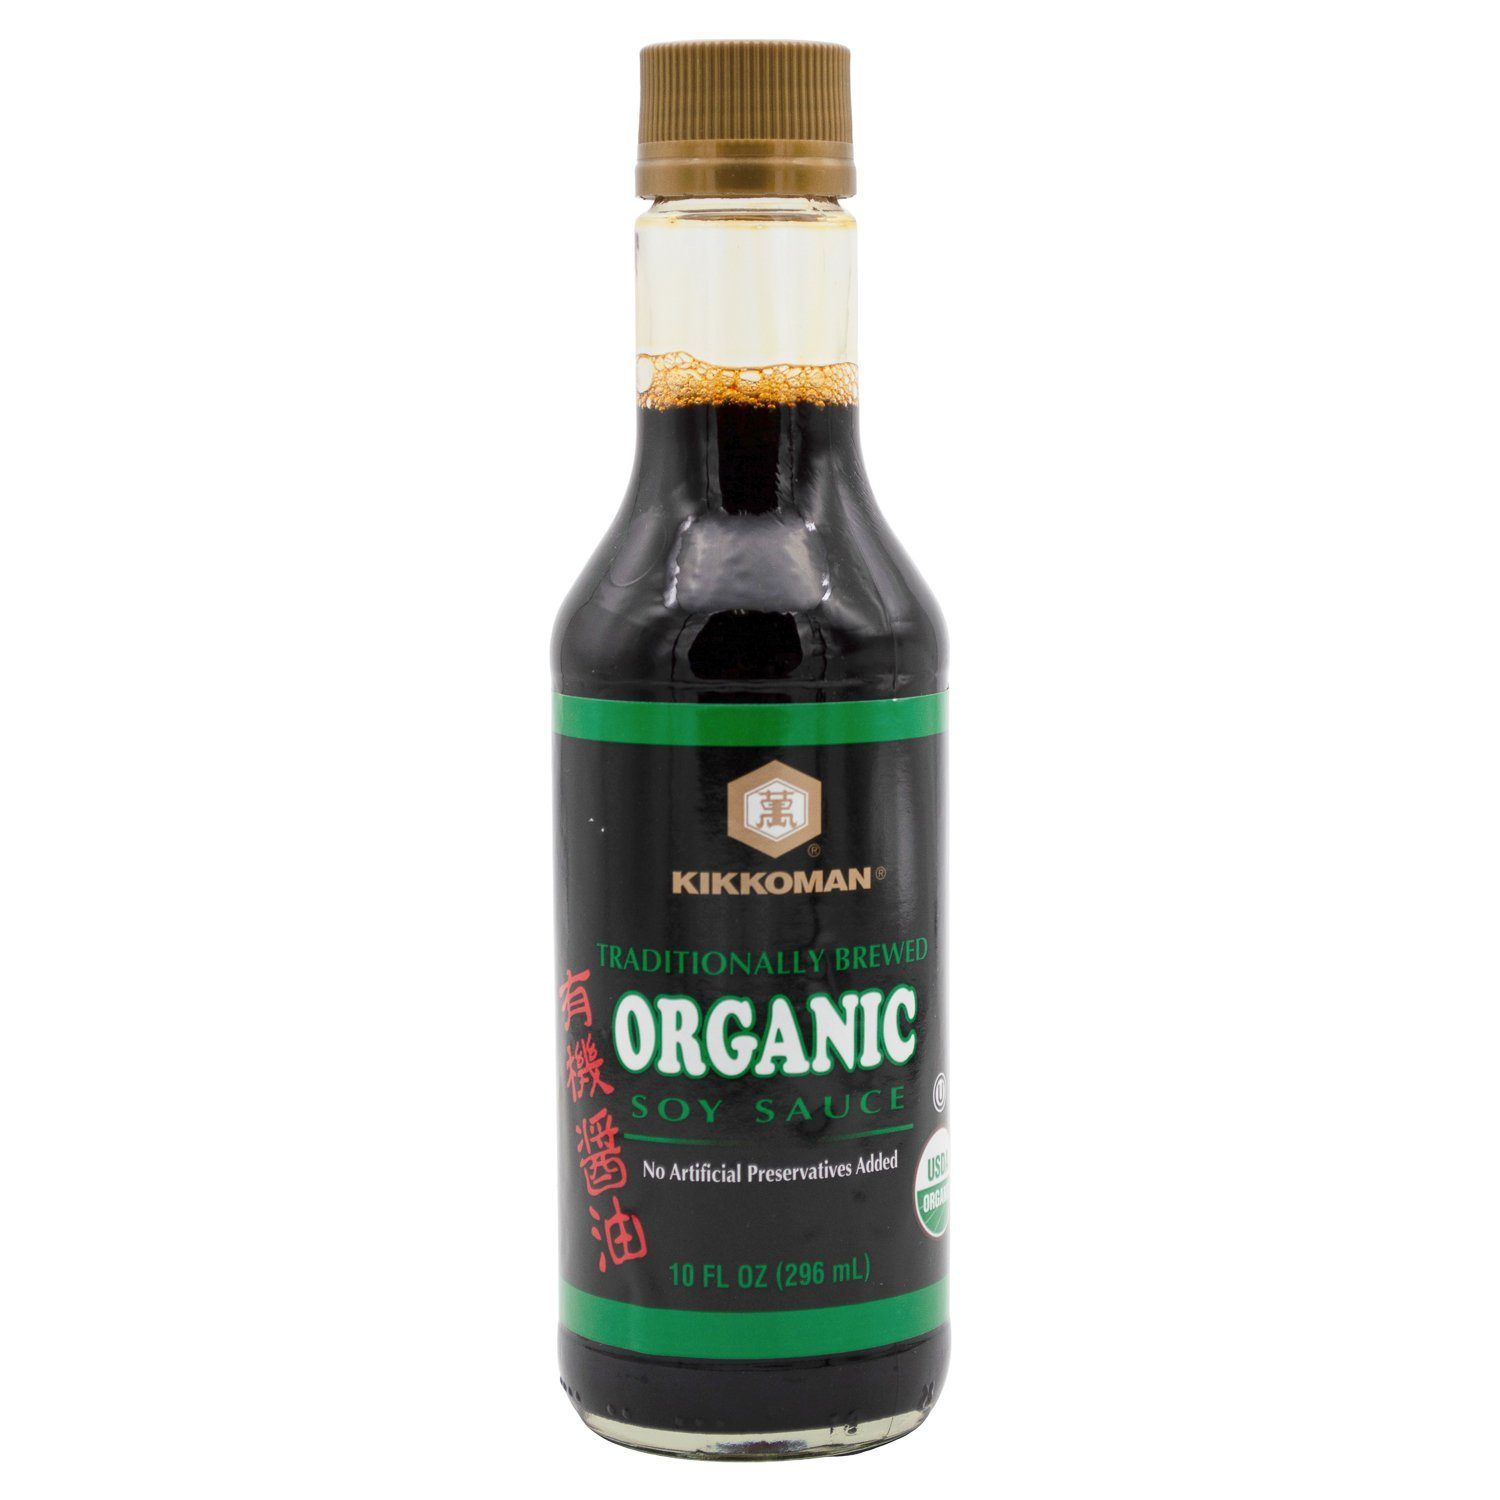 Kikkoman Naturally Brewed Soy Sauce Kikkoman Organic 10 Fluid Ounce